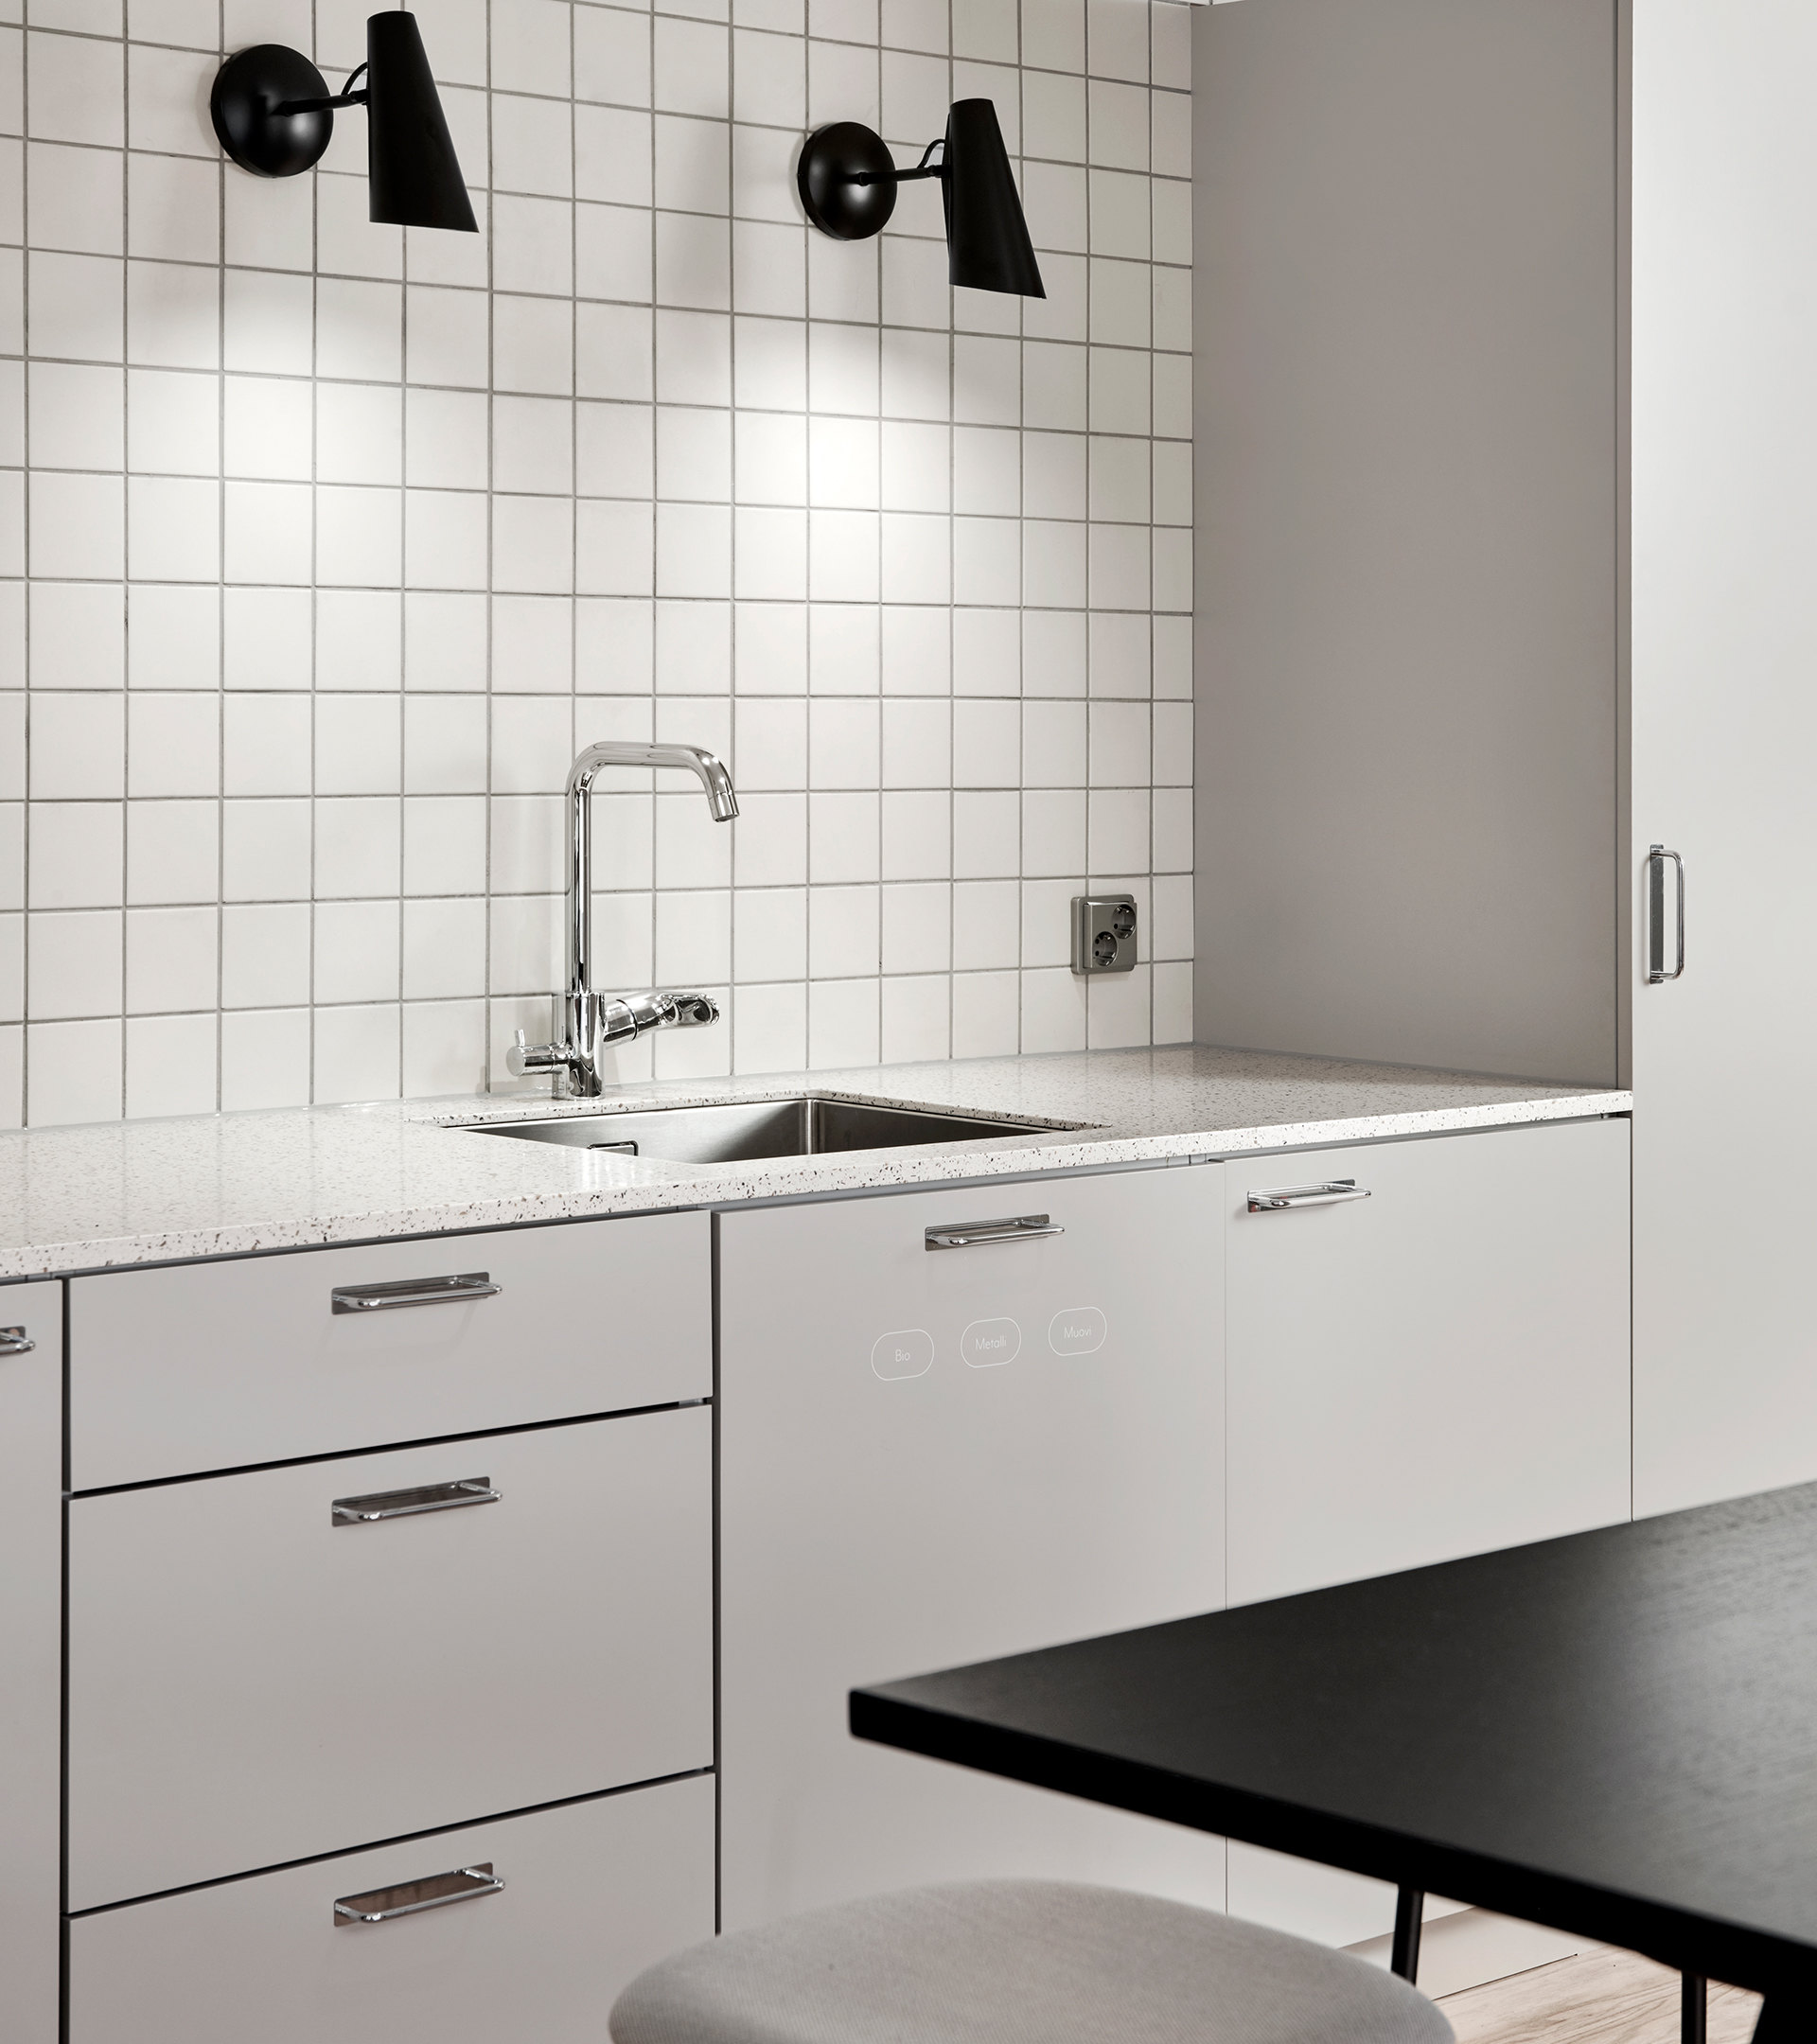 Orion, office, industrial, kitchen, details, Kohina